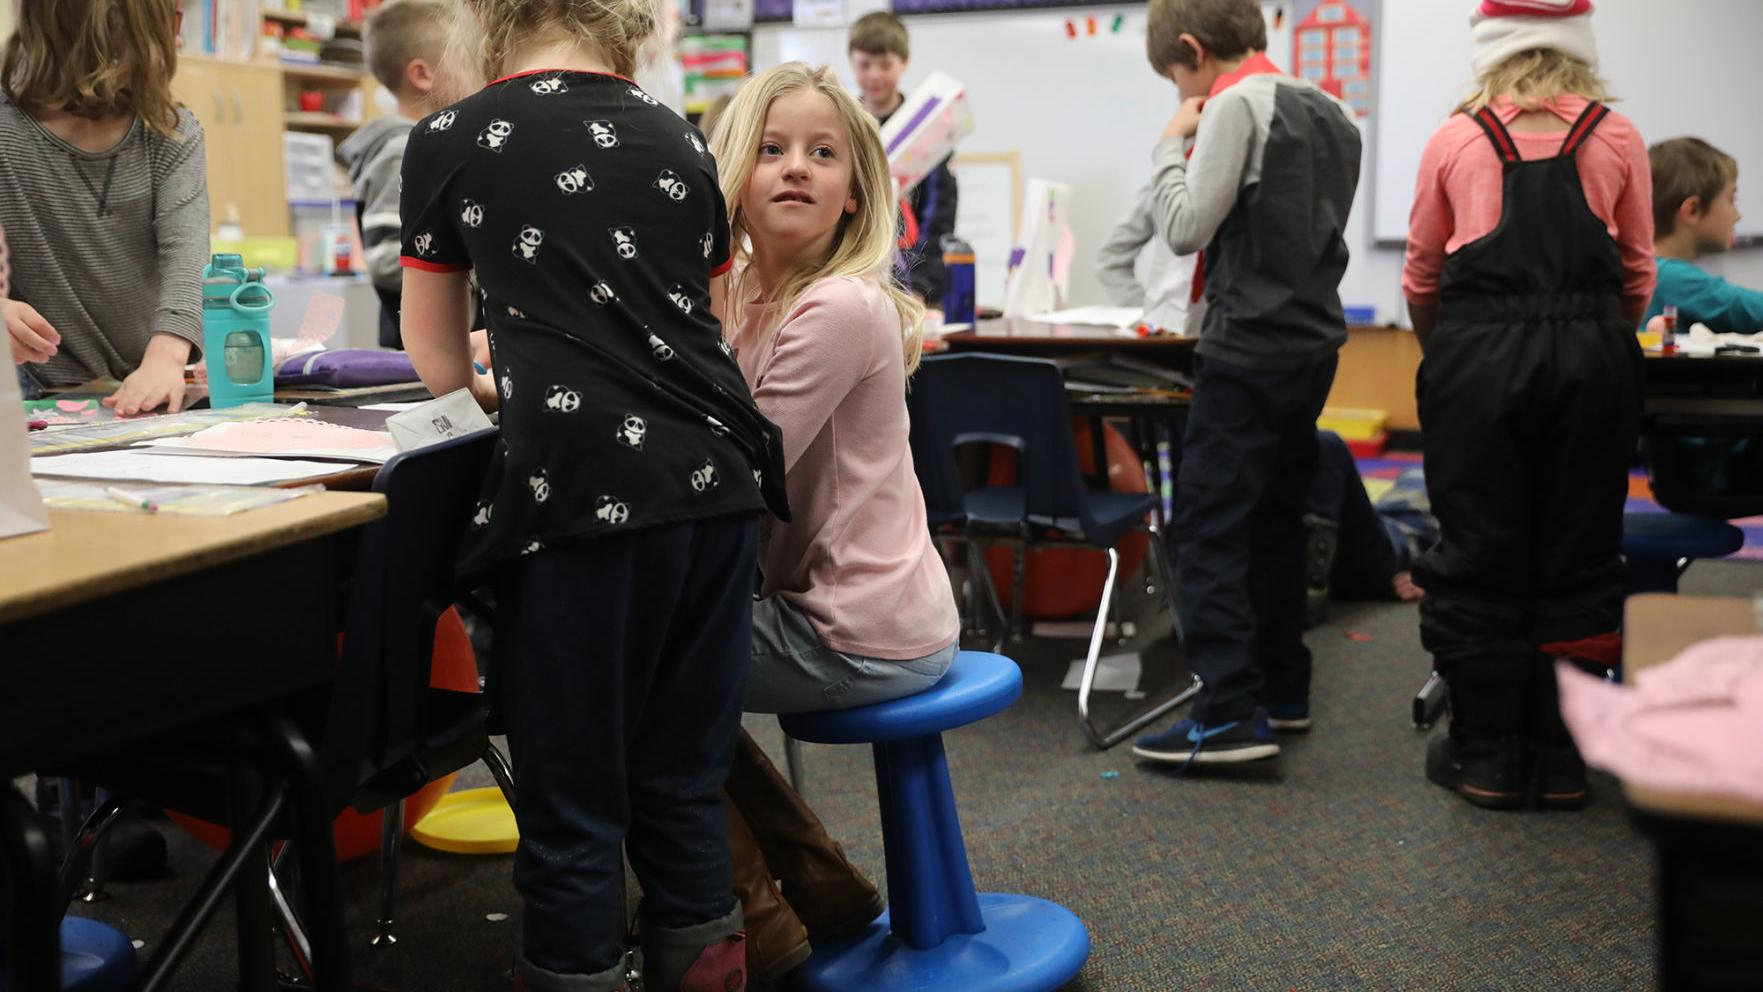 KORE chairs expand flexible seating options at Sechrist